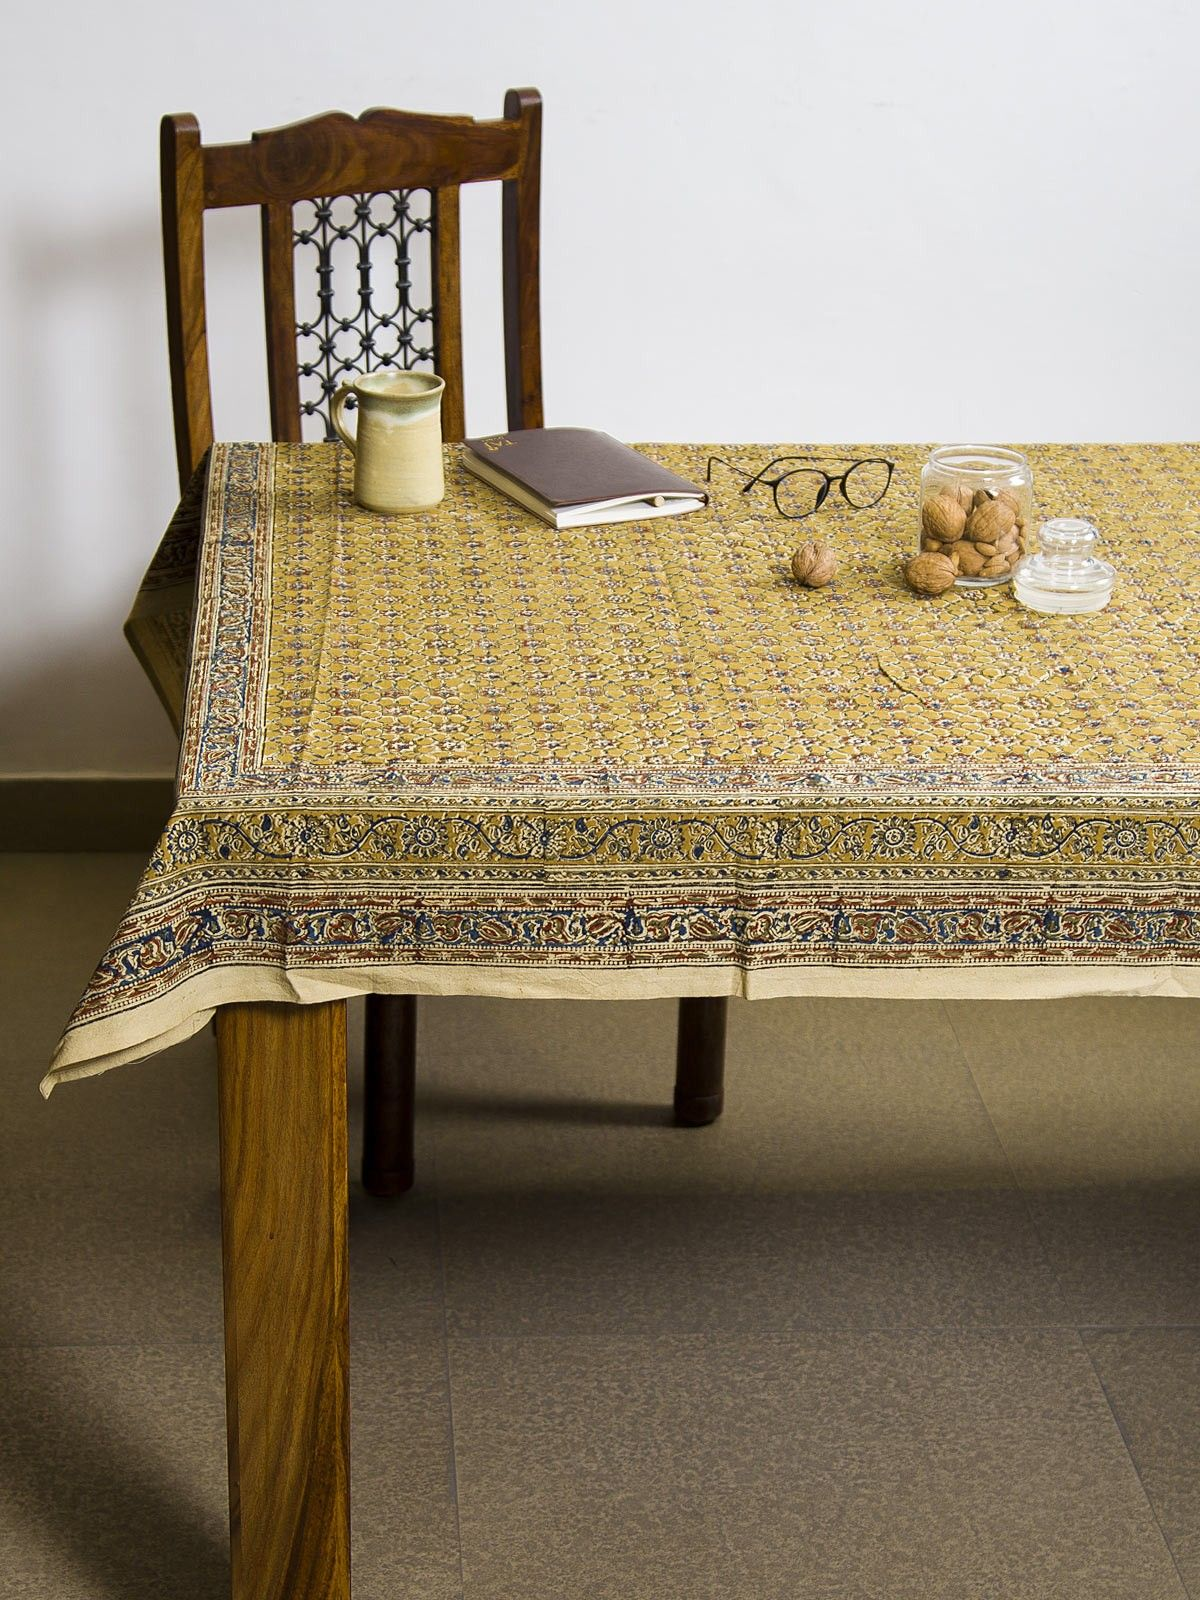 Dijon Vayati Kalamkari 6 seater table cover